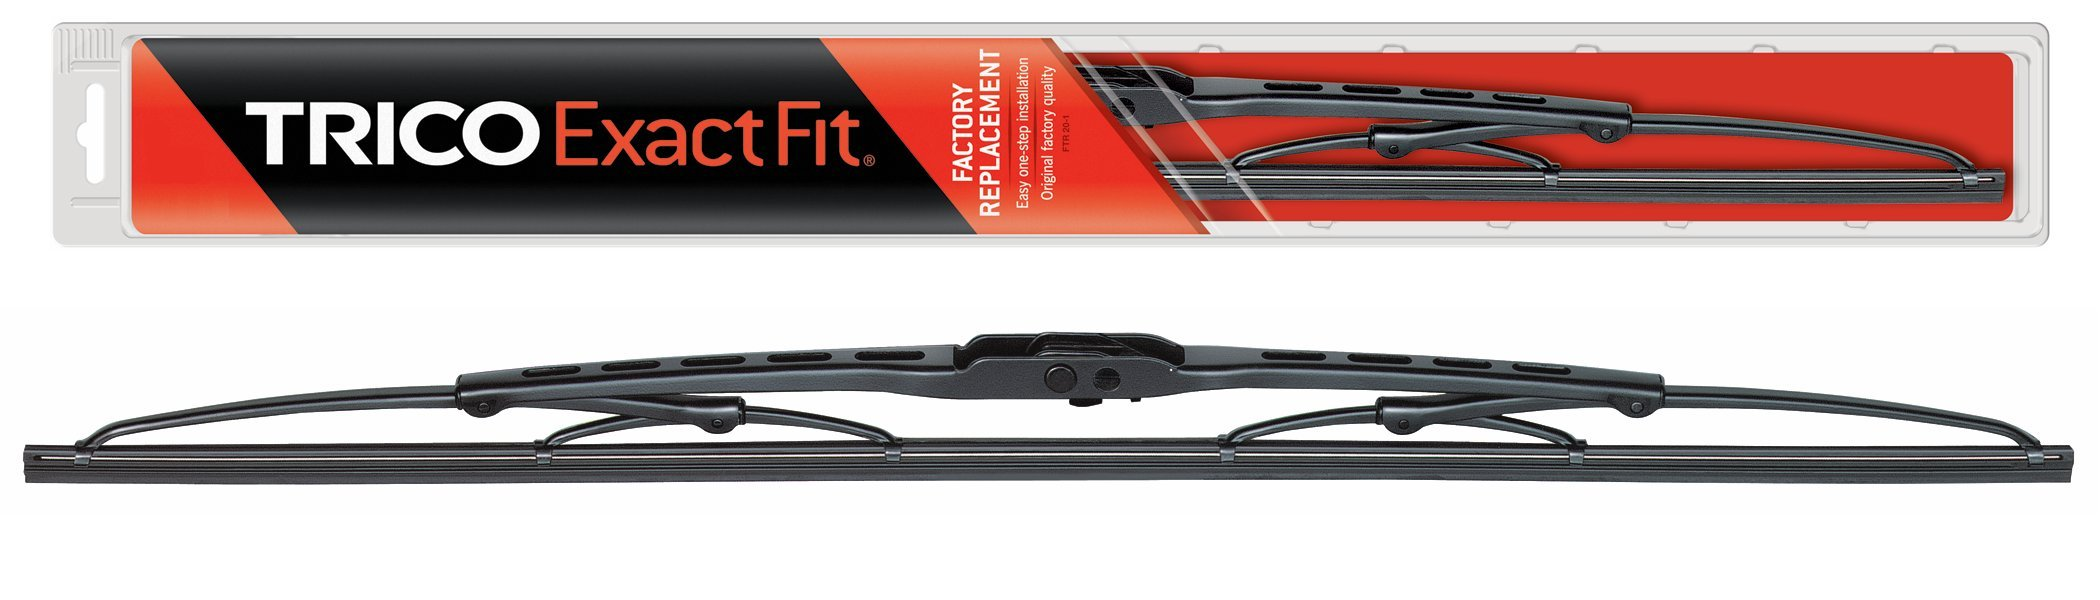 B98999-146 Adapter Kit Fit Select RV Motorhomes Trico 68-261 26 HD Wiper Blades 2 Wiper Set If Vehicle Not In  Garage Verify Fitment at www.TricoProducts.com Before Purchasing